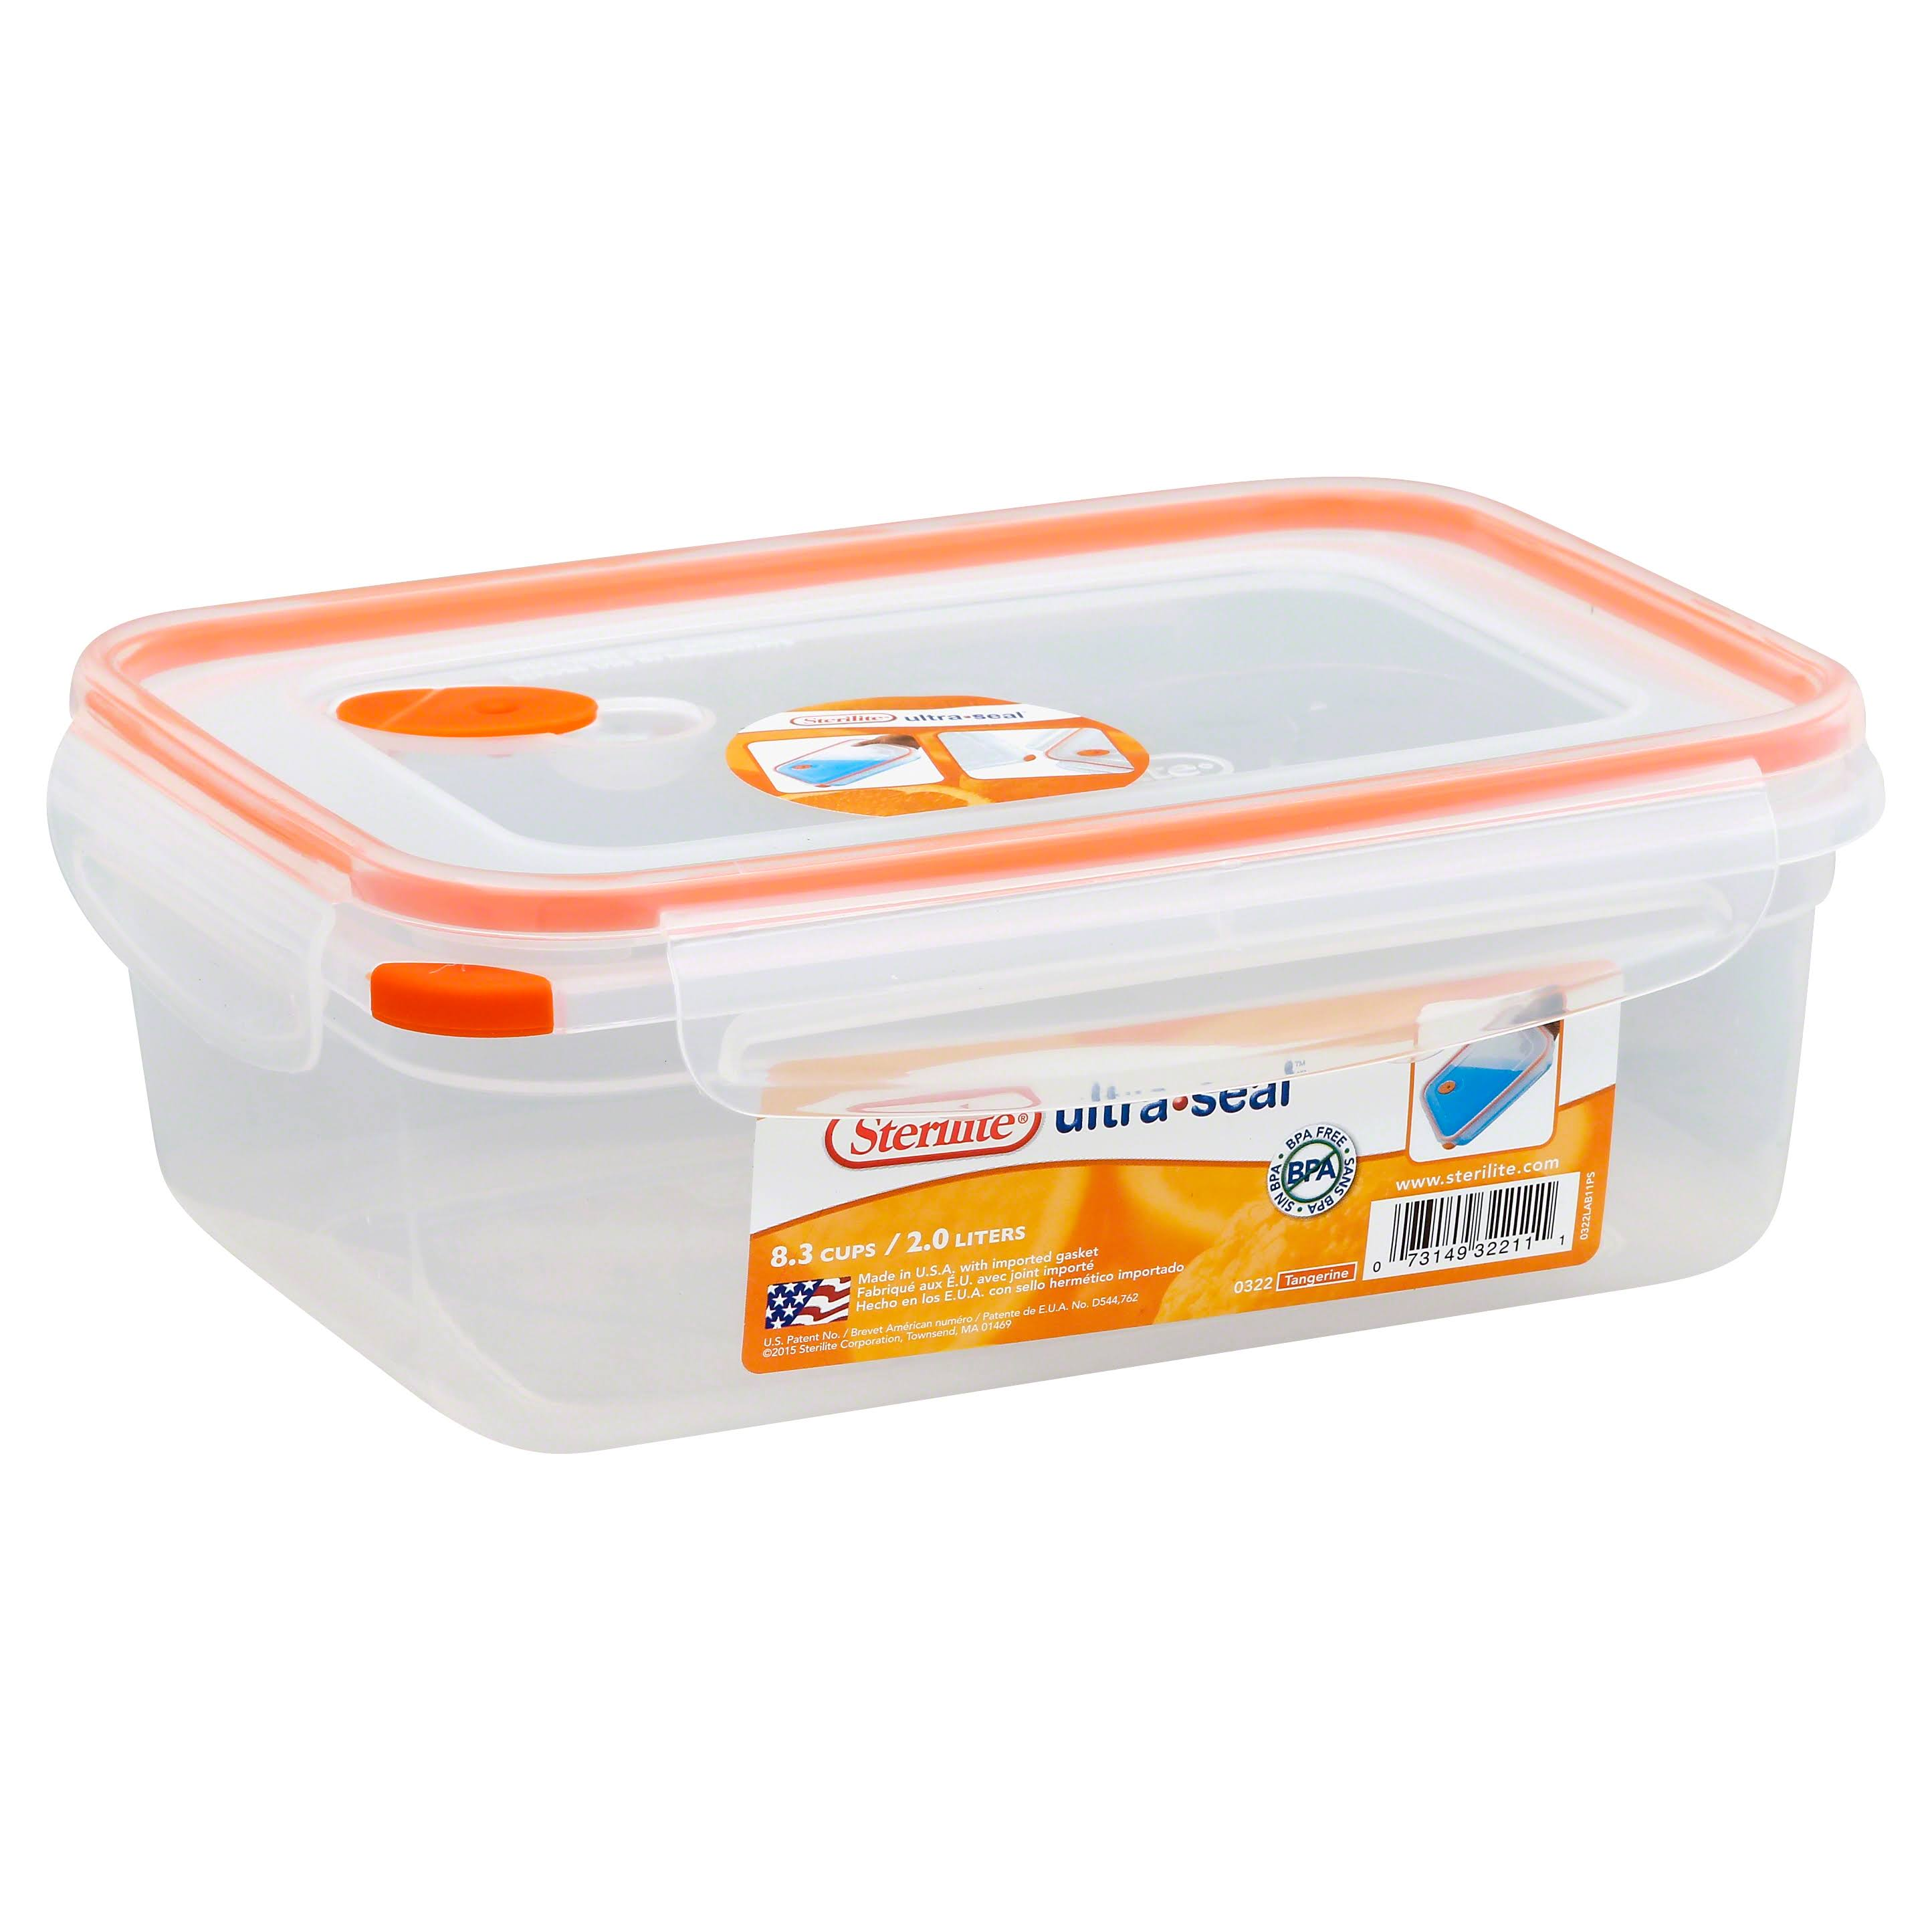 Sterilite 03221106 Ultra-Seal Food Container, Rectangle